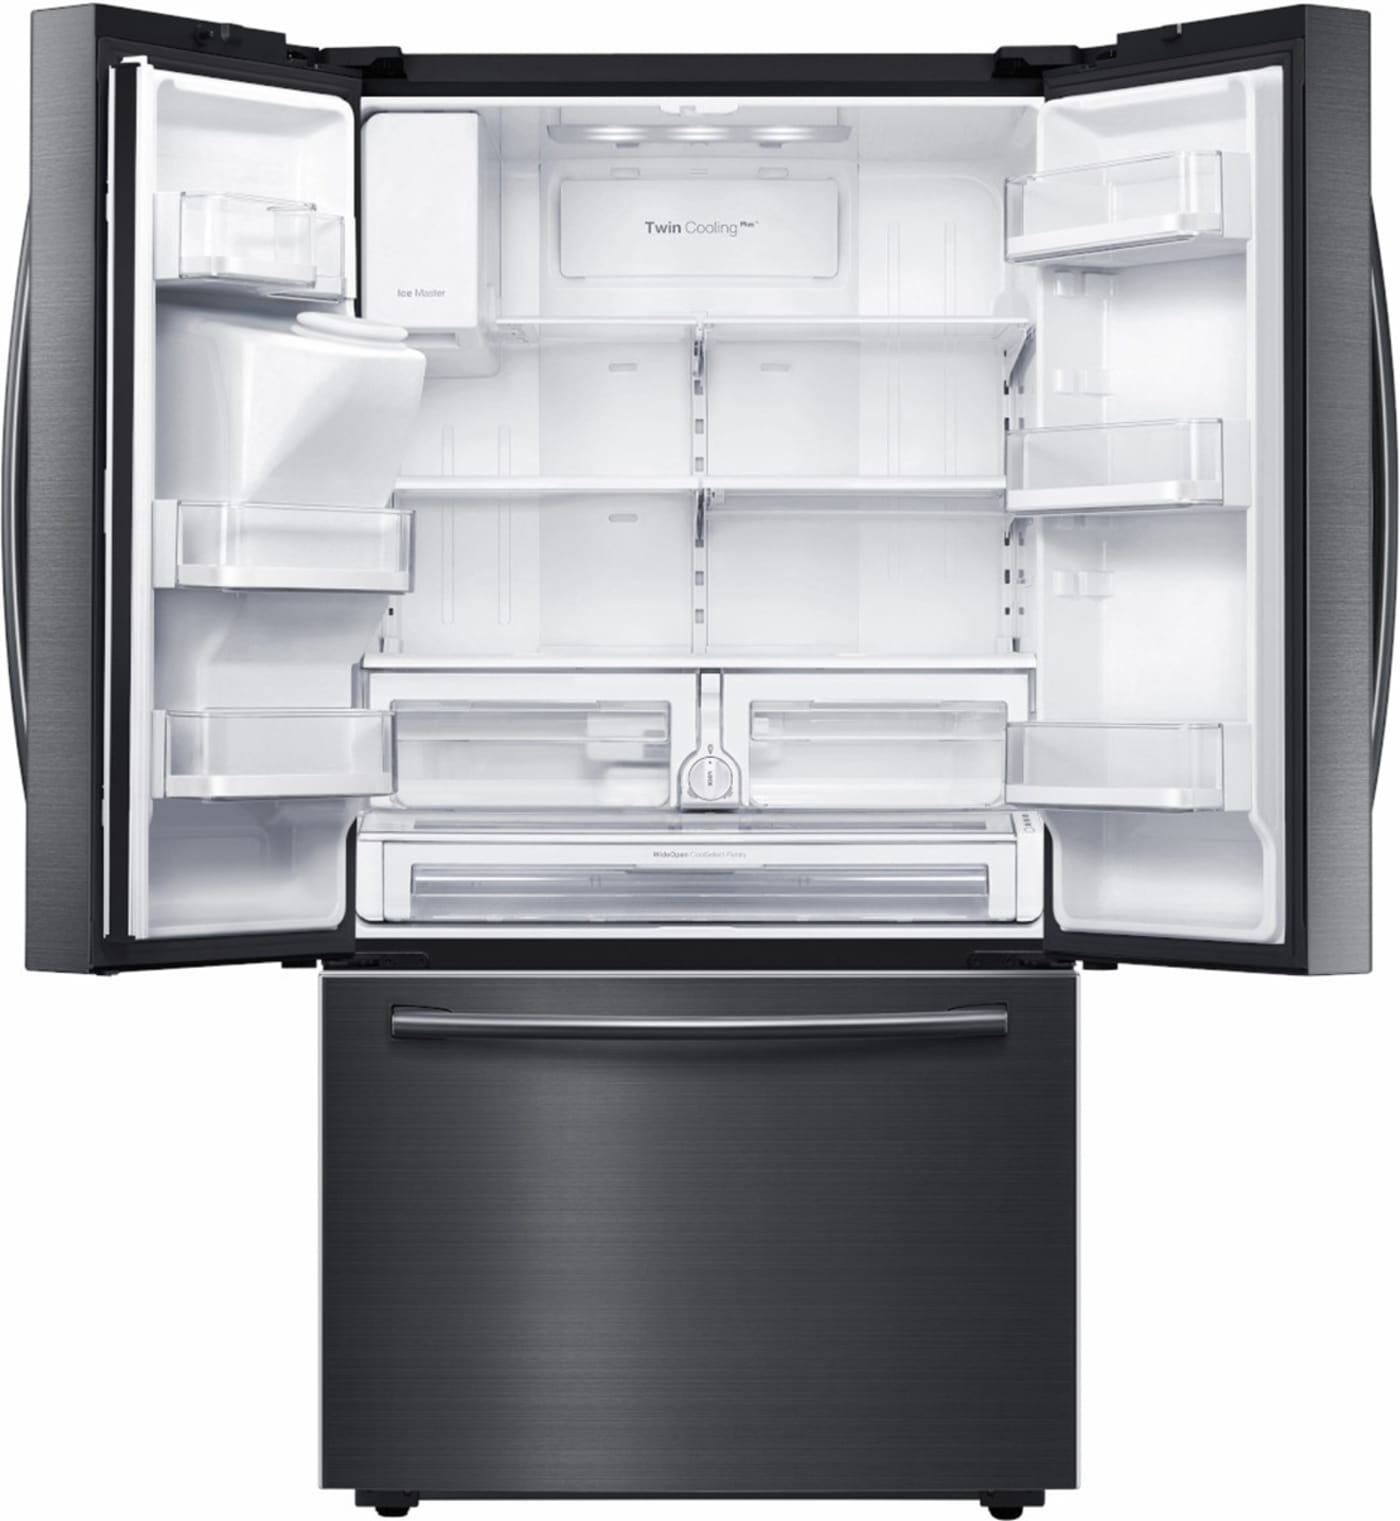 Rf28hfedbsg By Samsung French Door Refrigerators